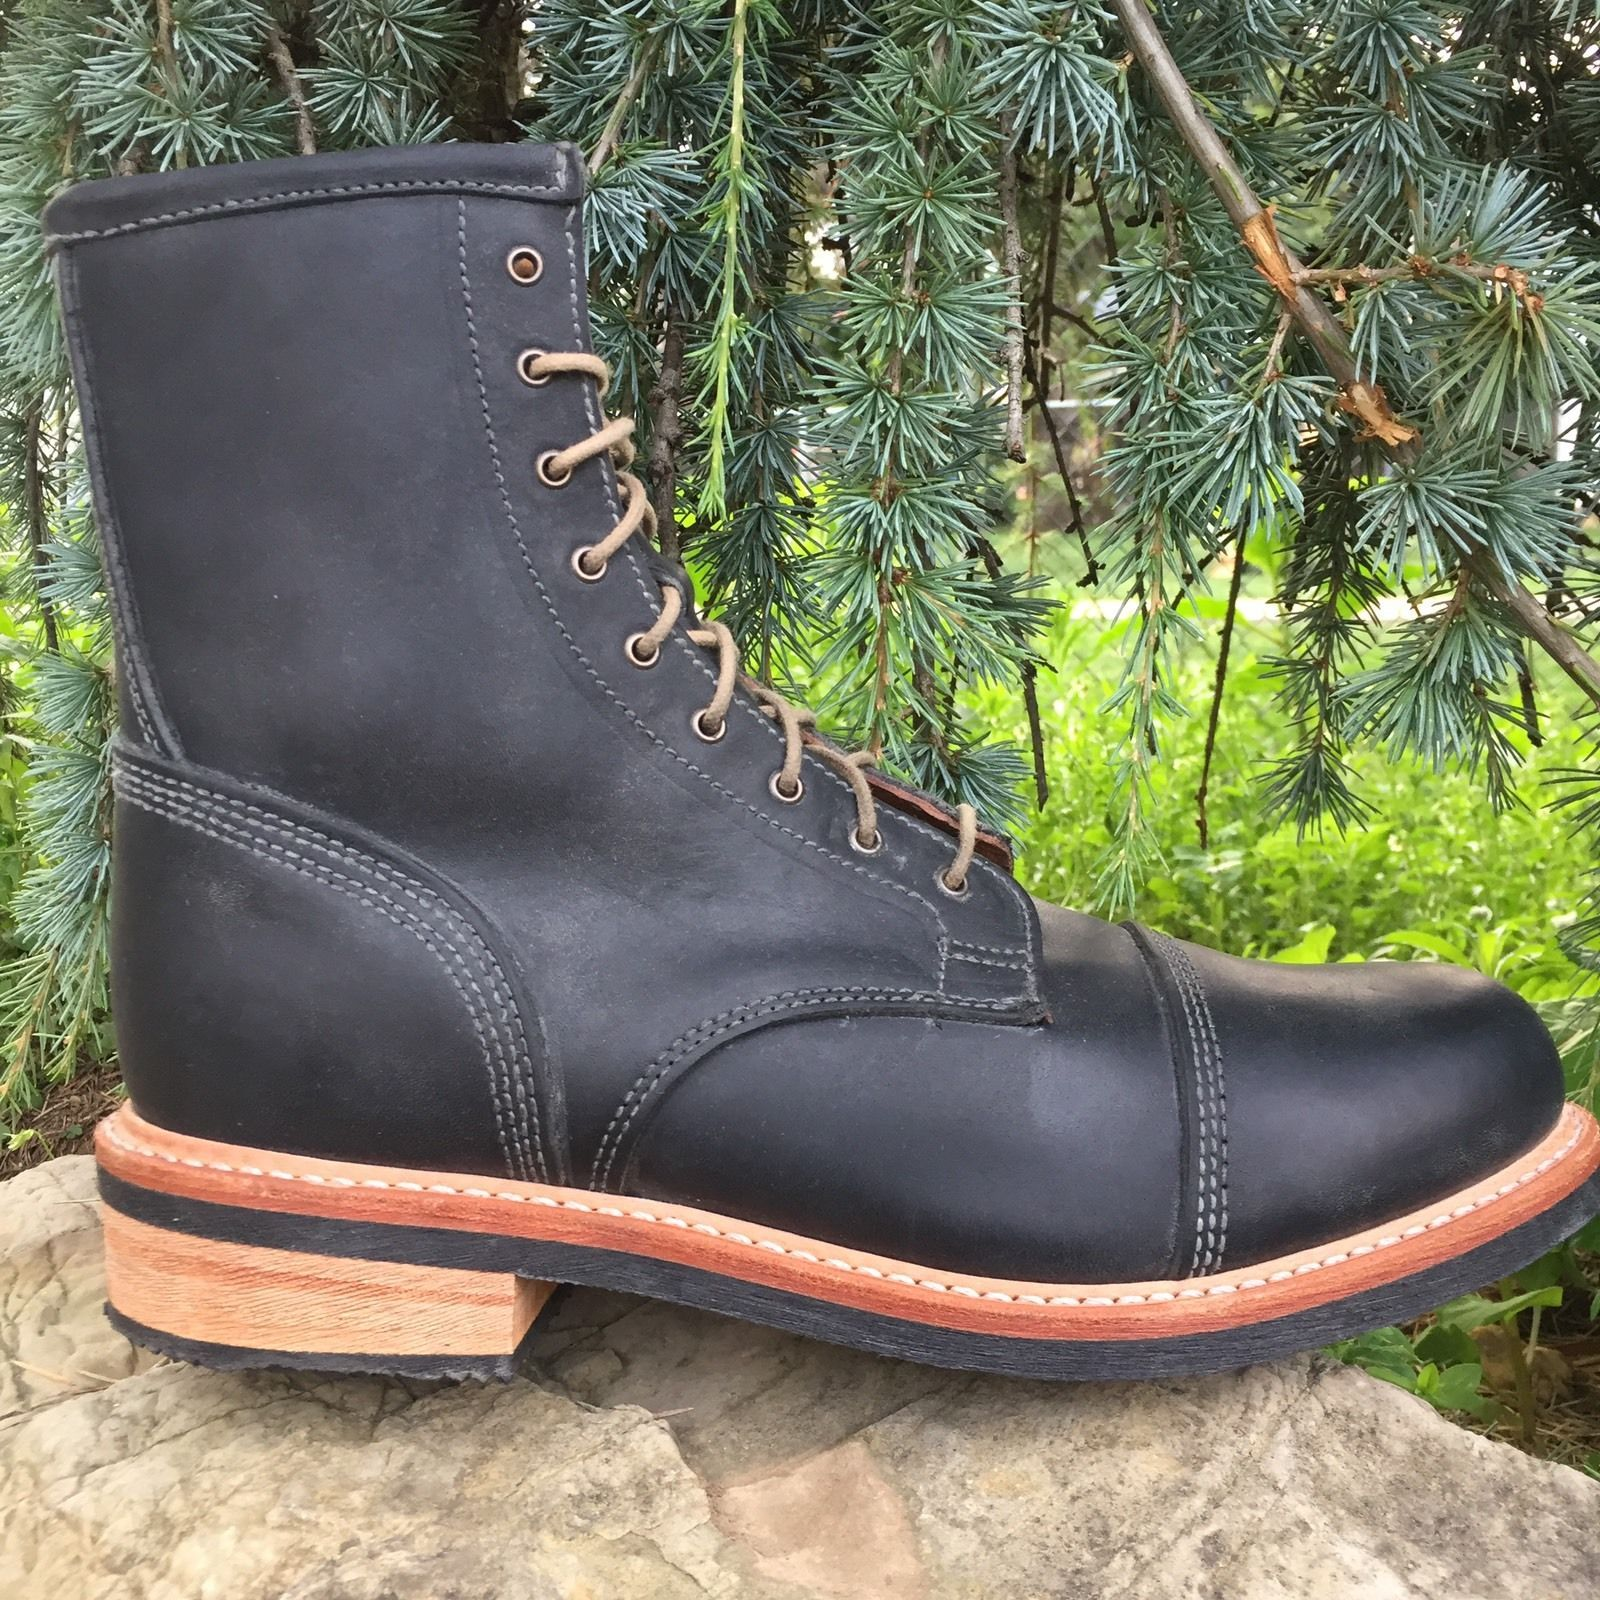 6457498c9fb $490 Timberland Boot Company® Smuggler's and 50 similar items